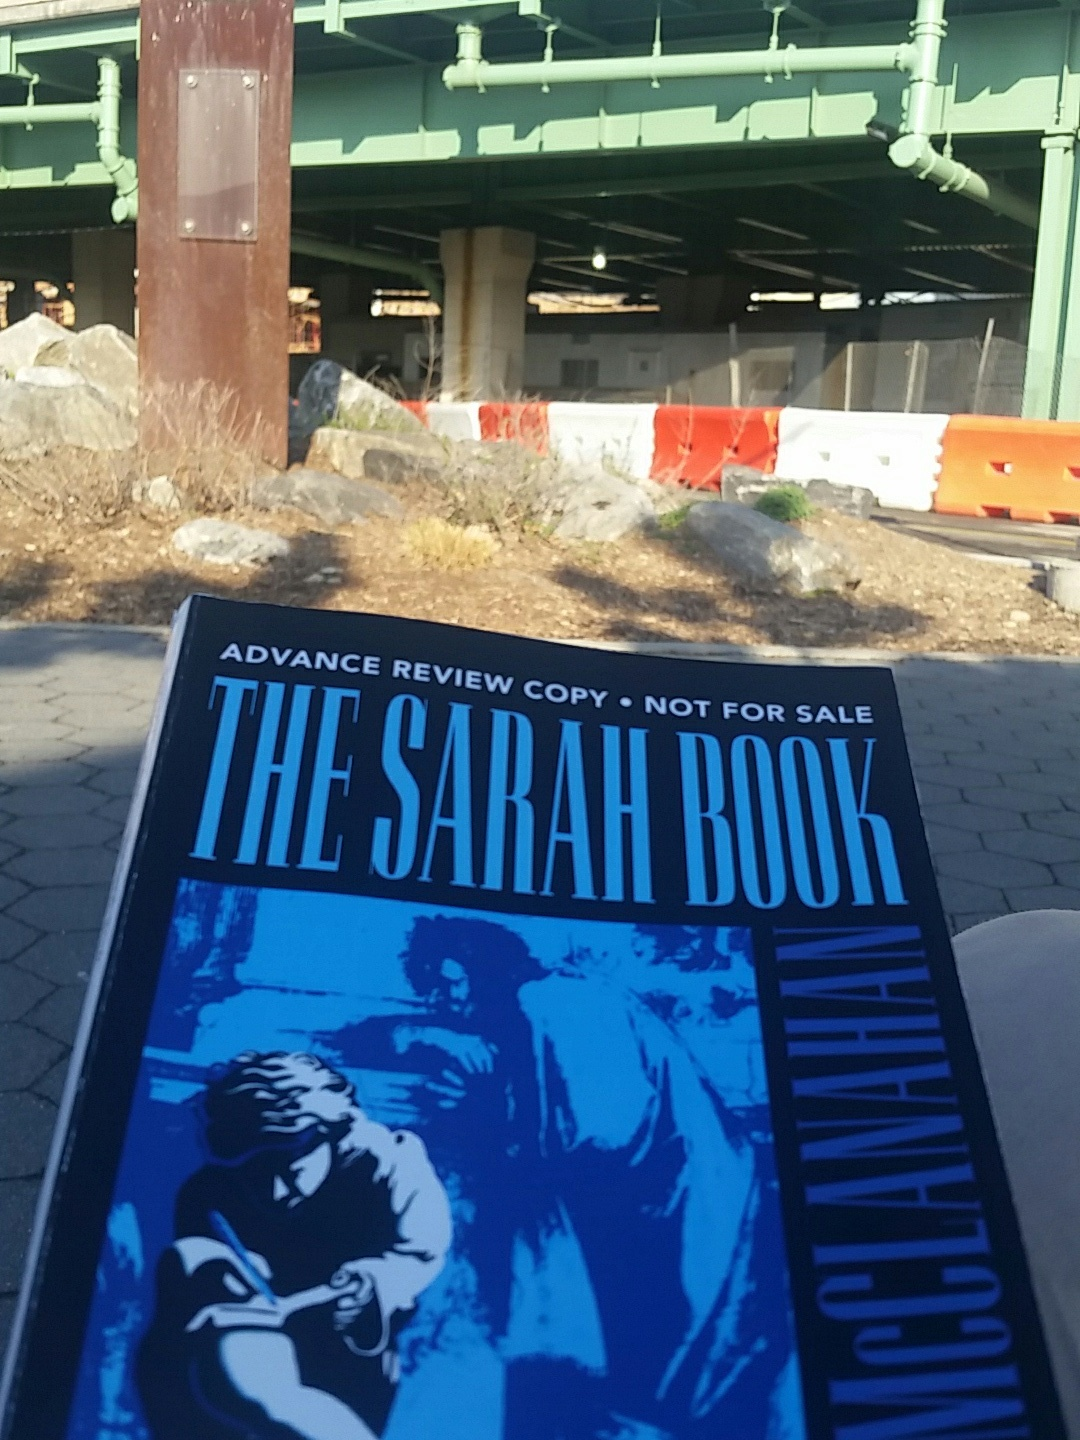 The Sarah Book by Scott McClanahan